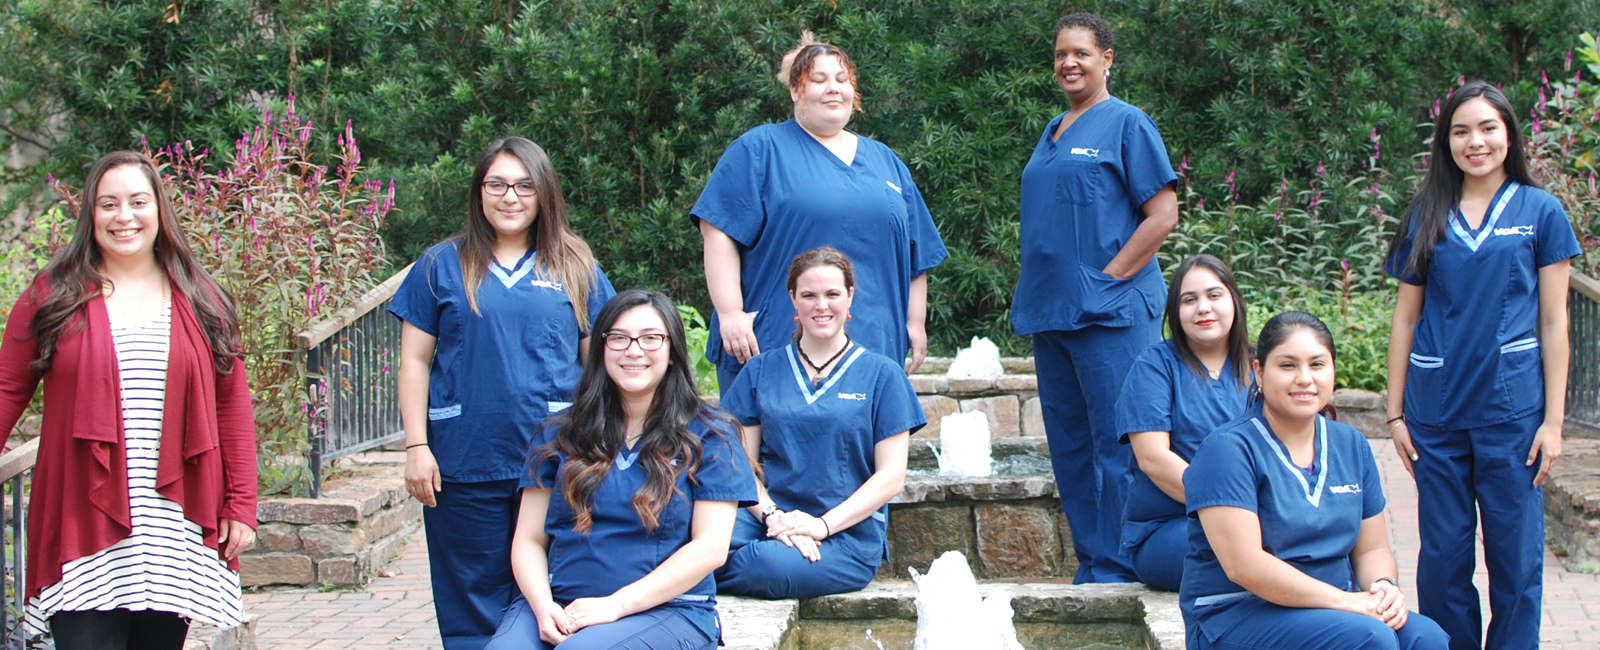 Team Picture of VCA Countryside Animal Hospital